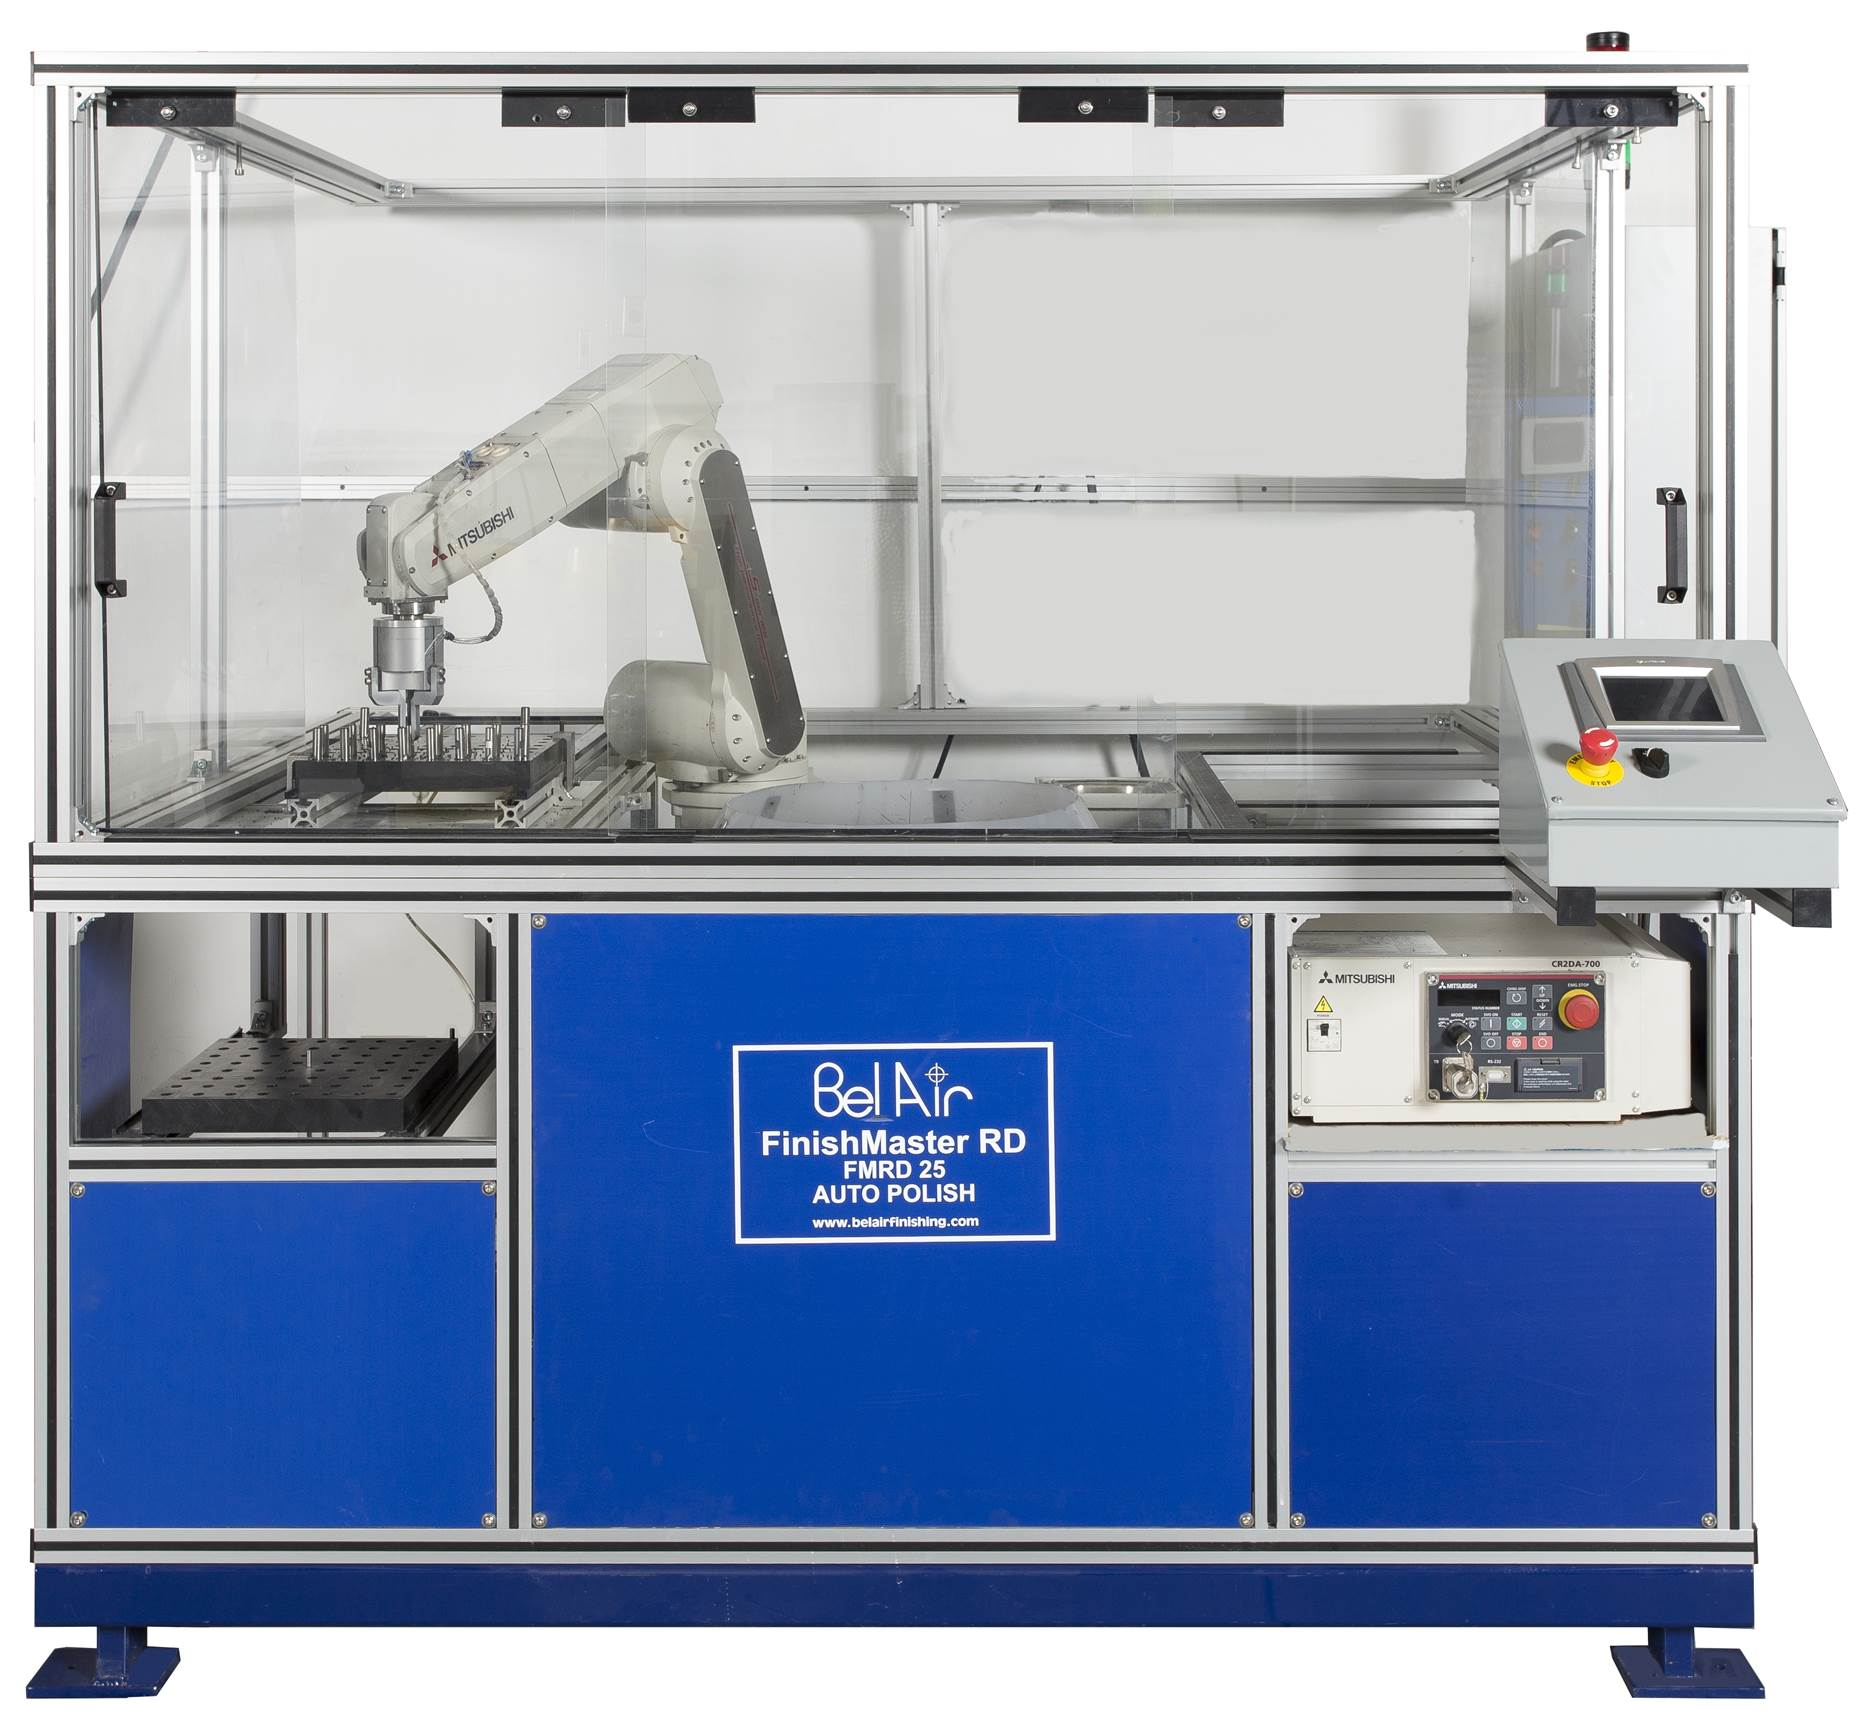 Automated Drag Finisher Used For Deburring, Honing, and Polishing of parts